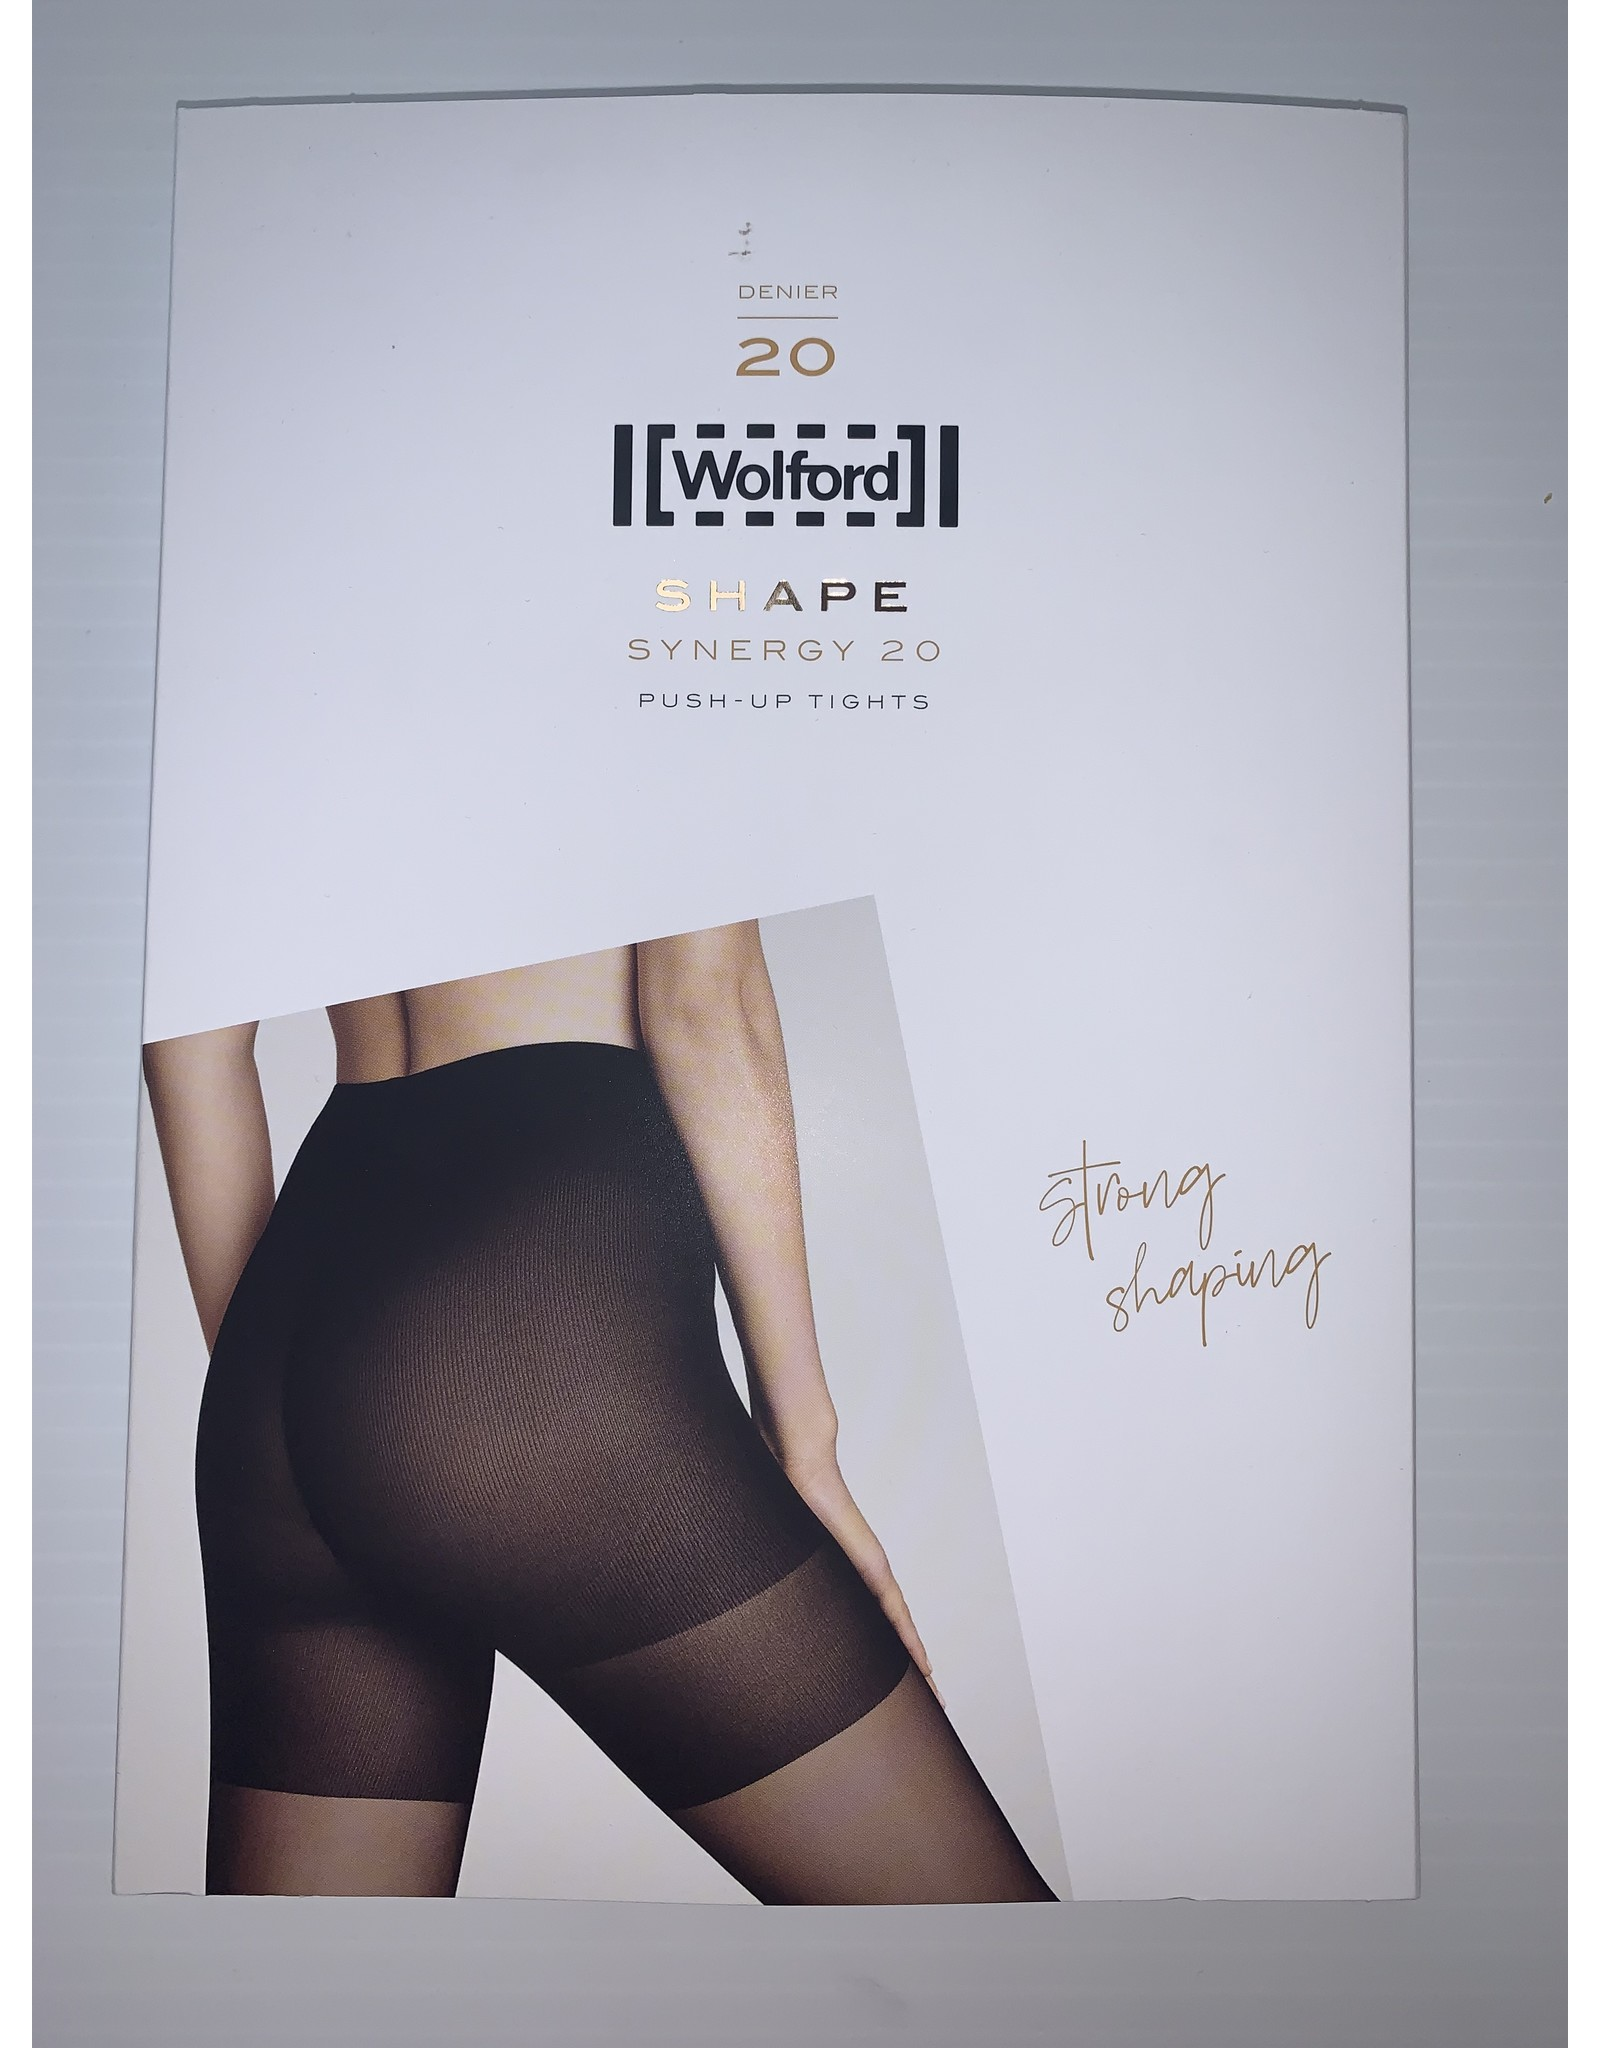 Wolford Wolford Synergy 20 Denier Strong Shaping Push Up Tights 14530